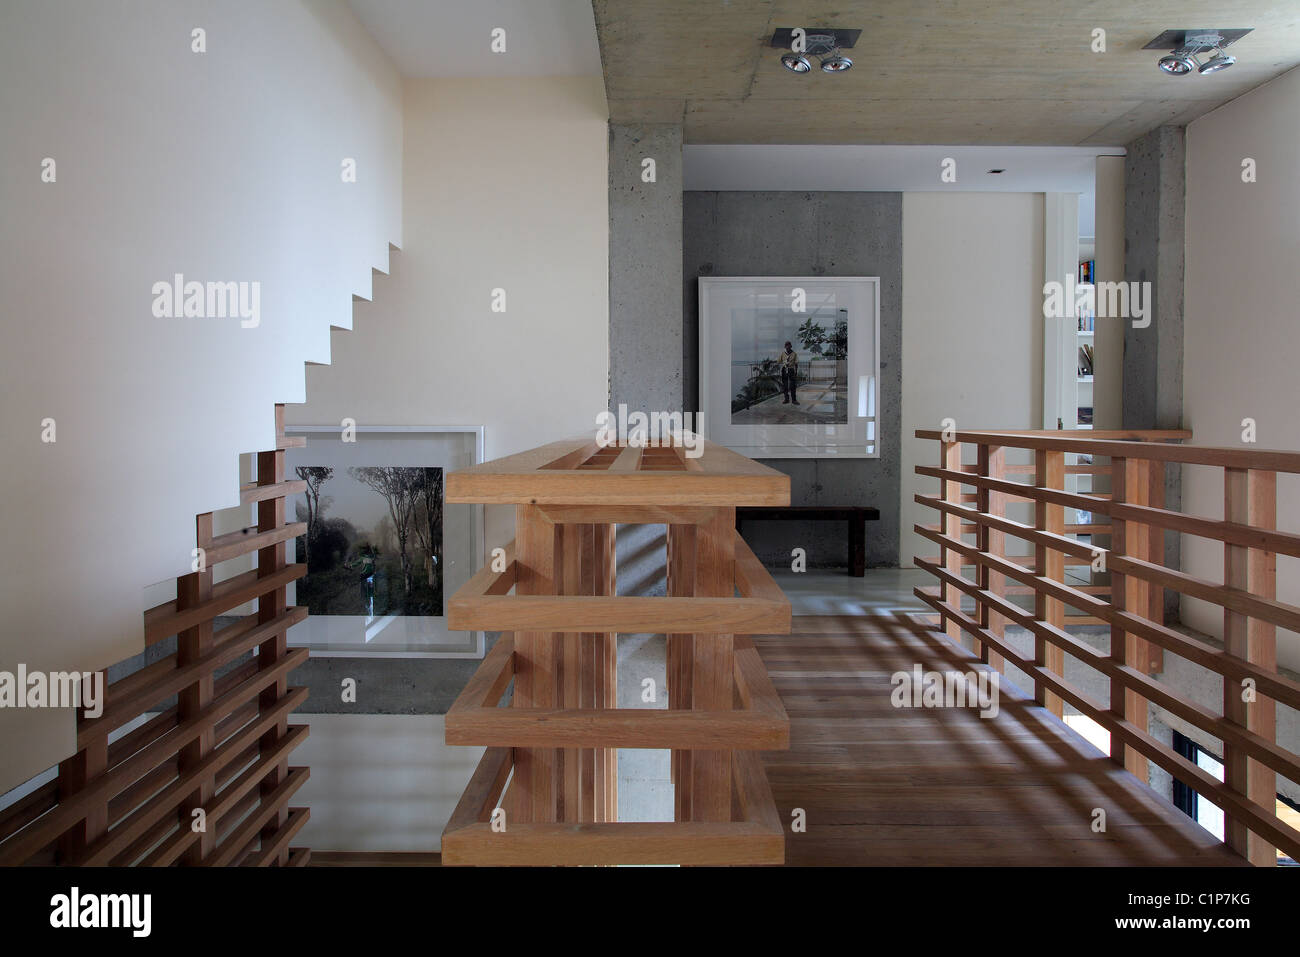 South Africa, Cape Town, Camps Bay, interieur of an architects house - Stock Image